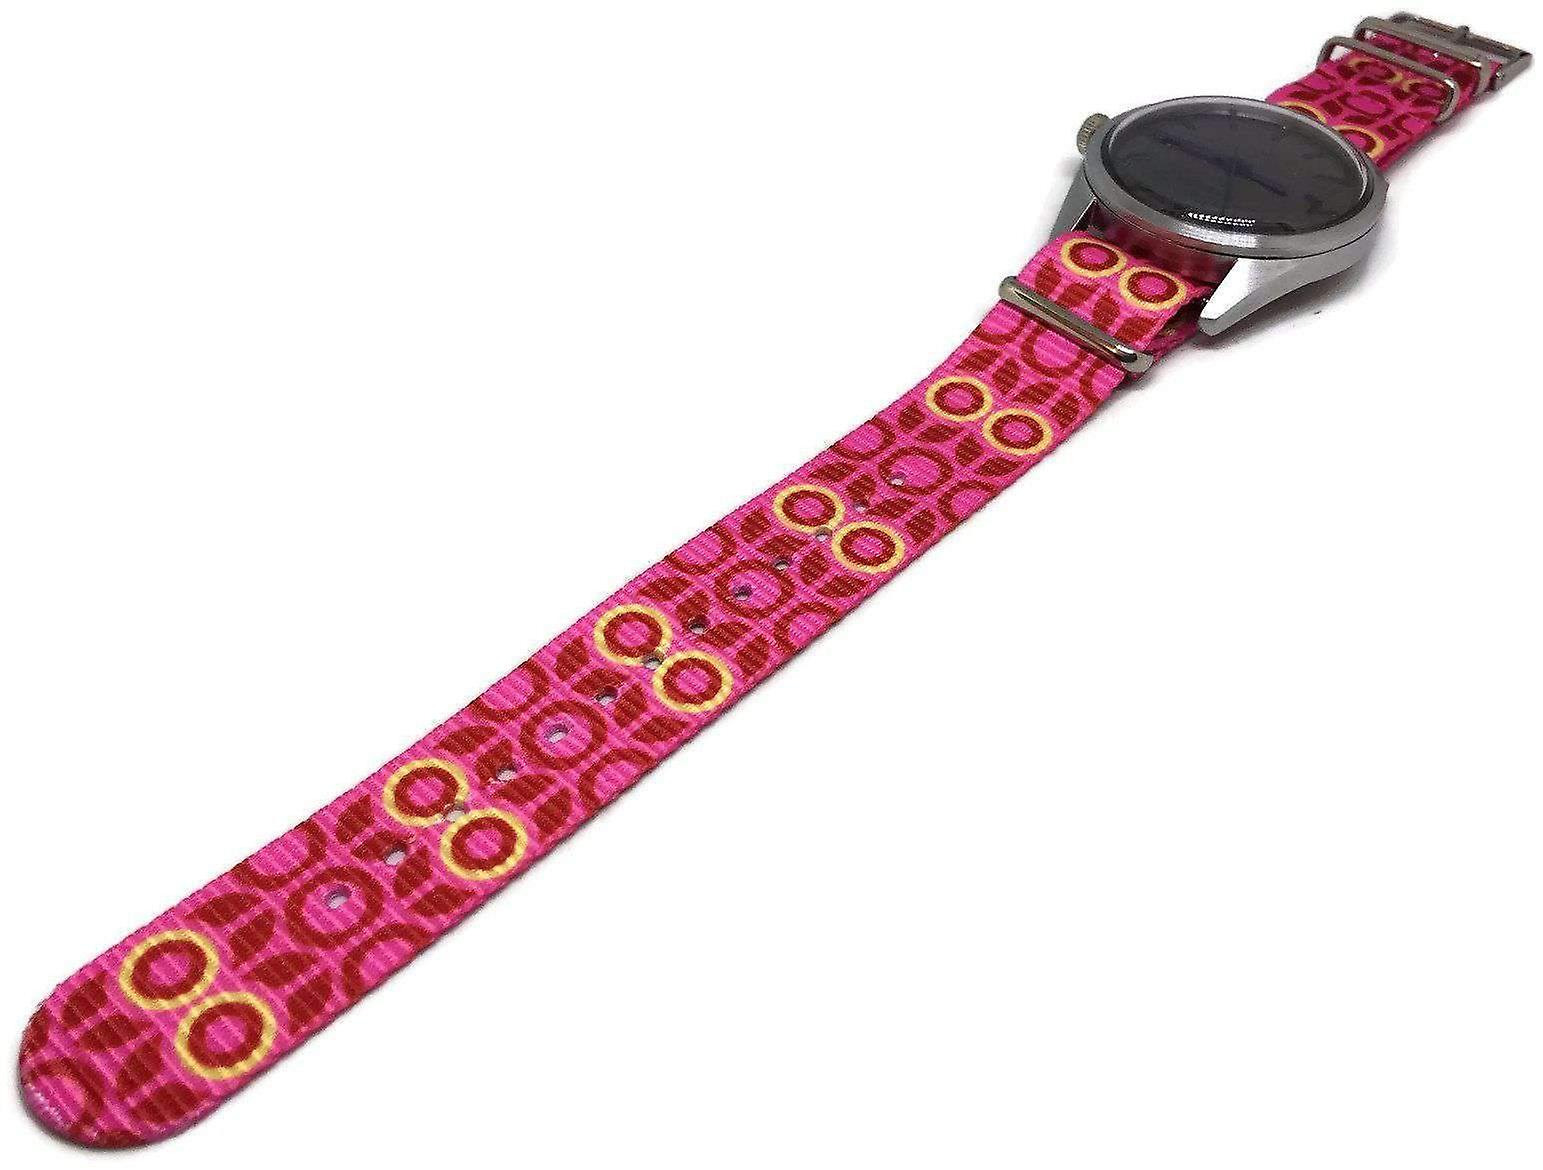 N.at.o zulu g10 style watch strap 20mm yellow pink flower pattern stainless steel buckle